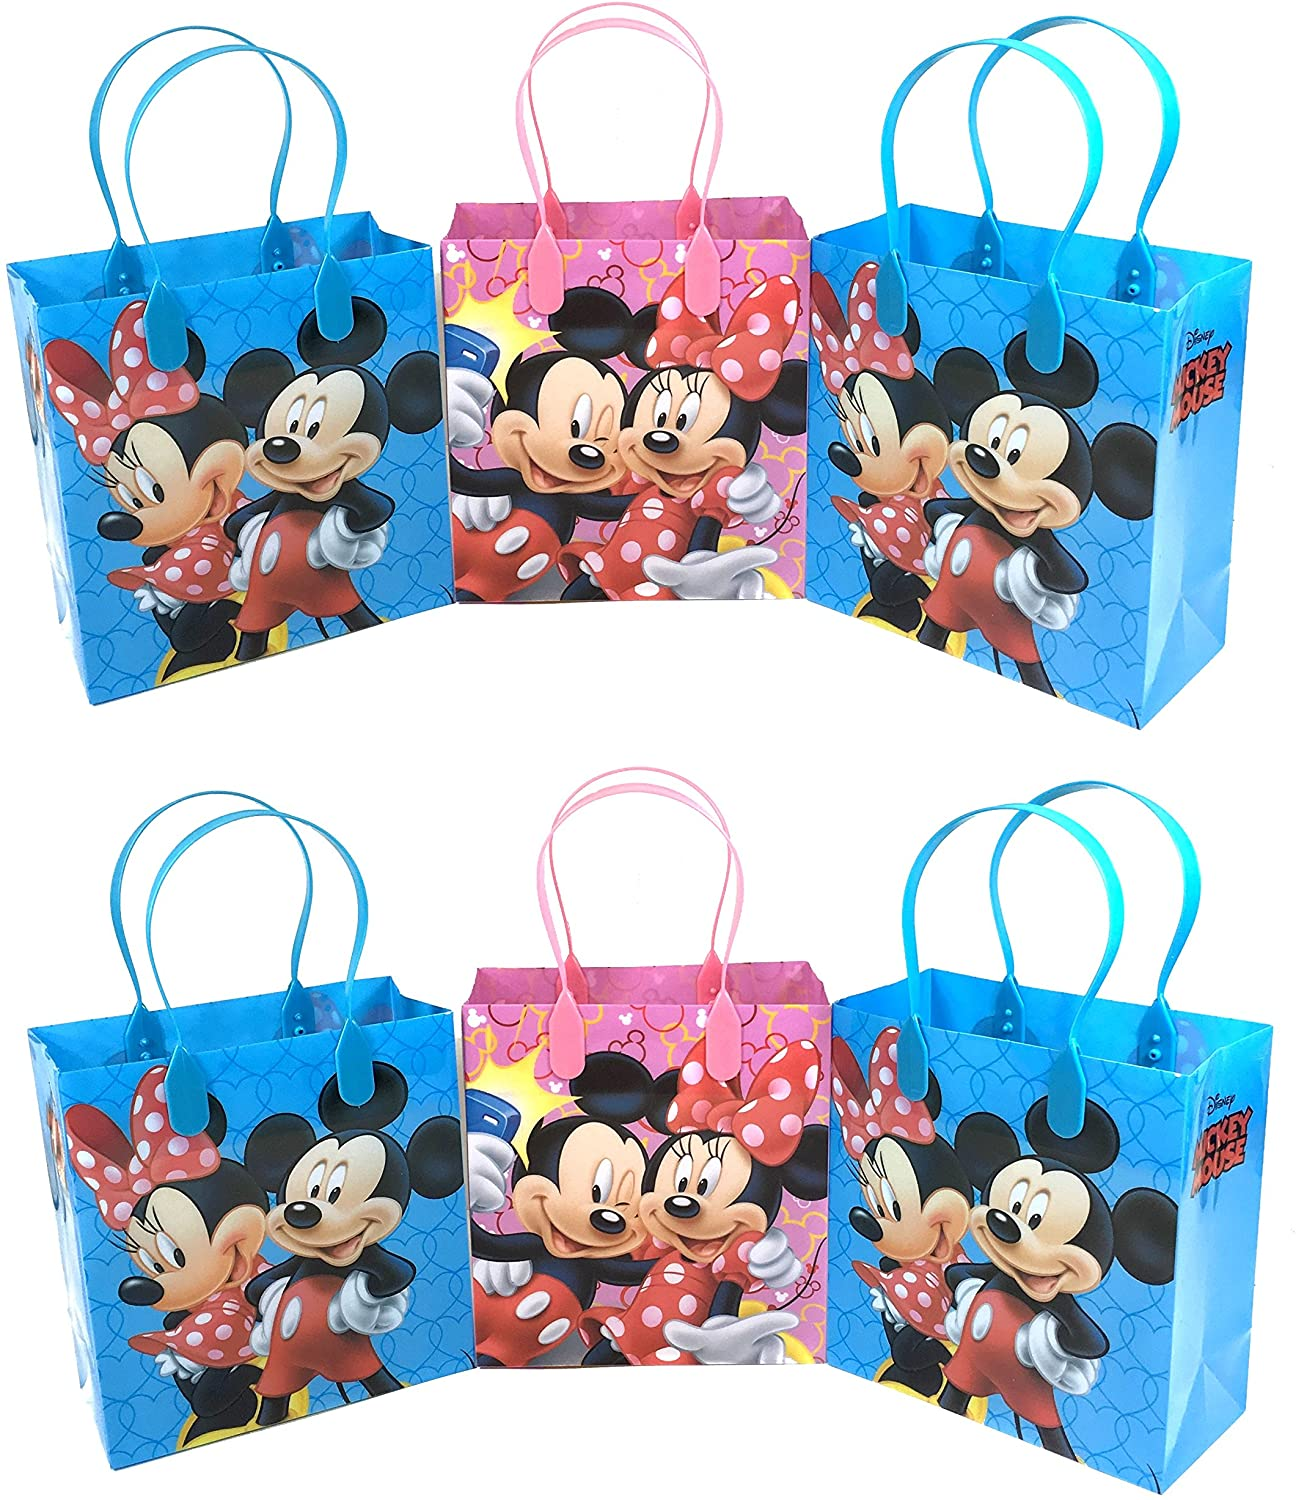 16 Count Minnie Mouse Bow-tique Party Favor Loot Bags